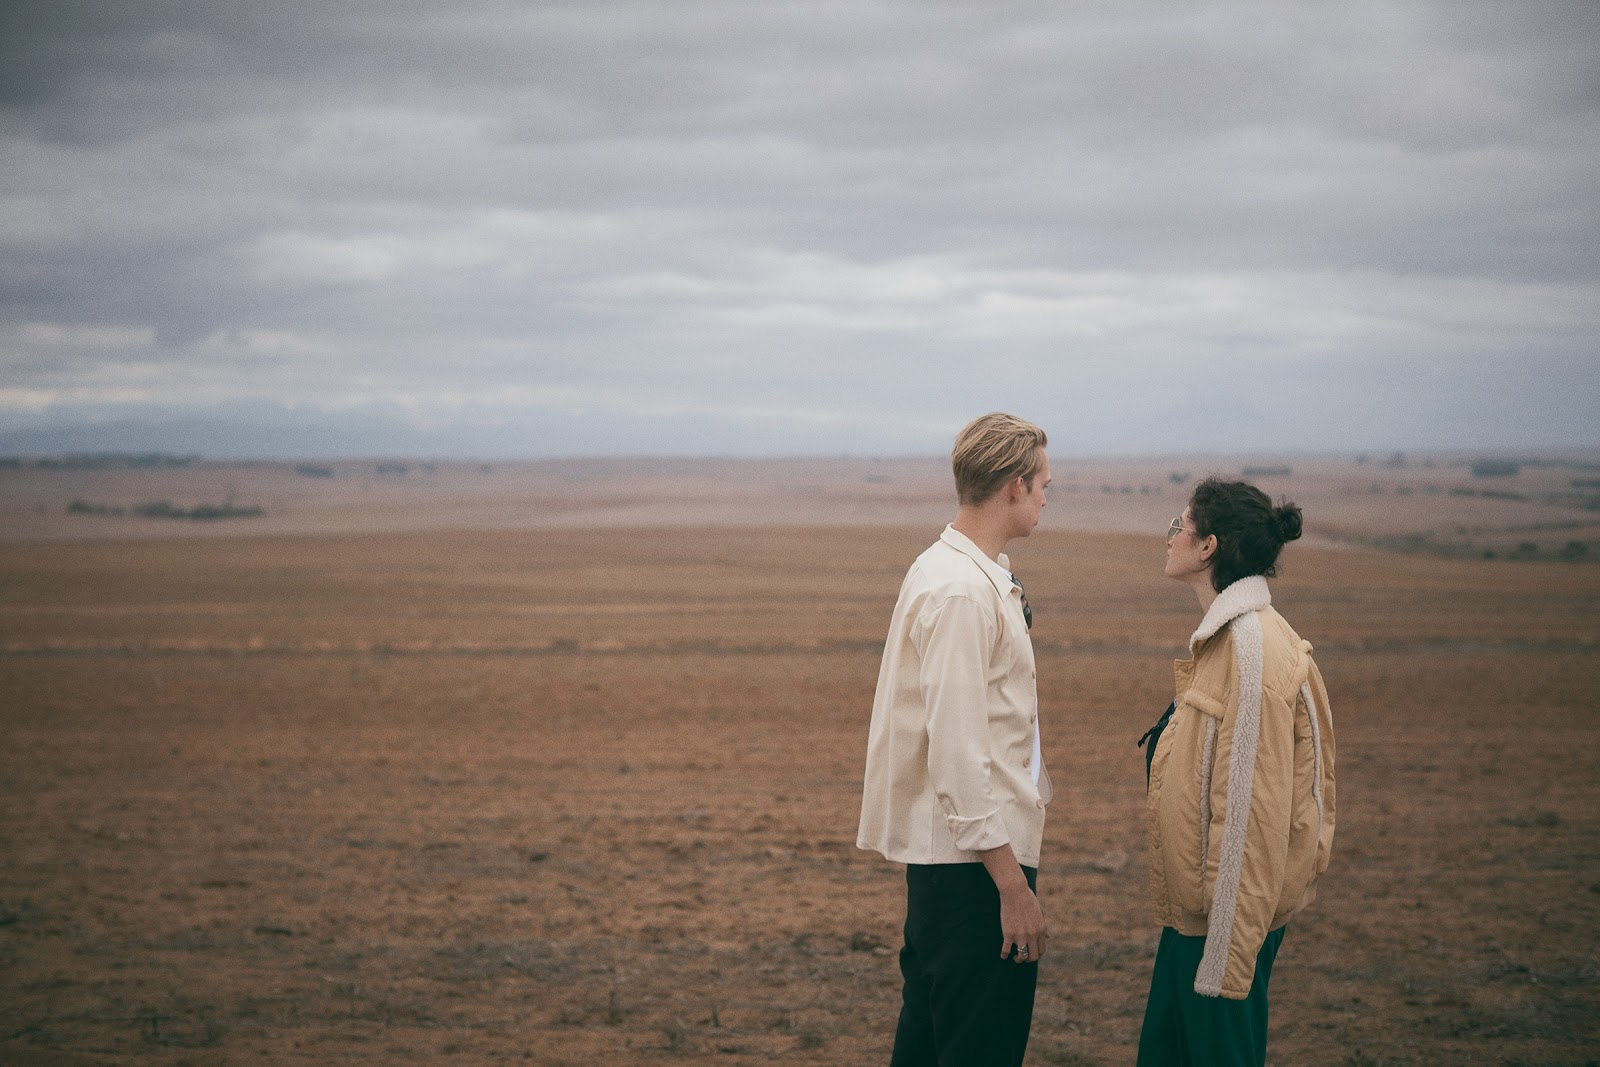 a man and a woman look out across a barren field